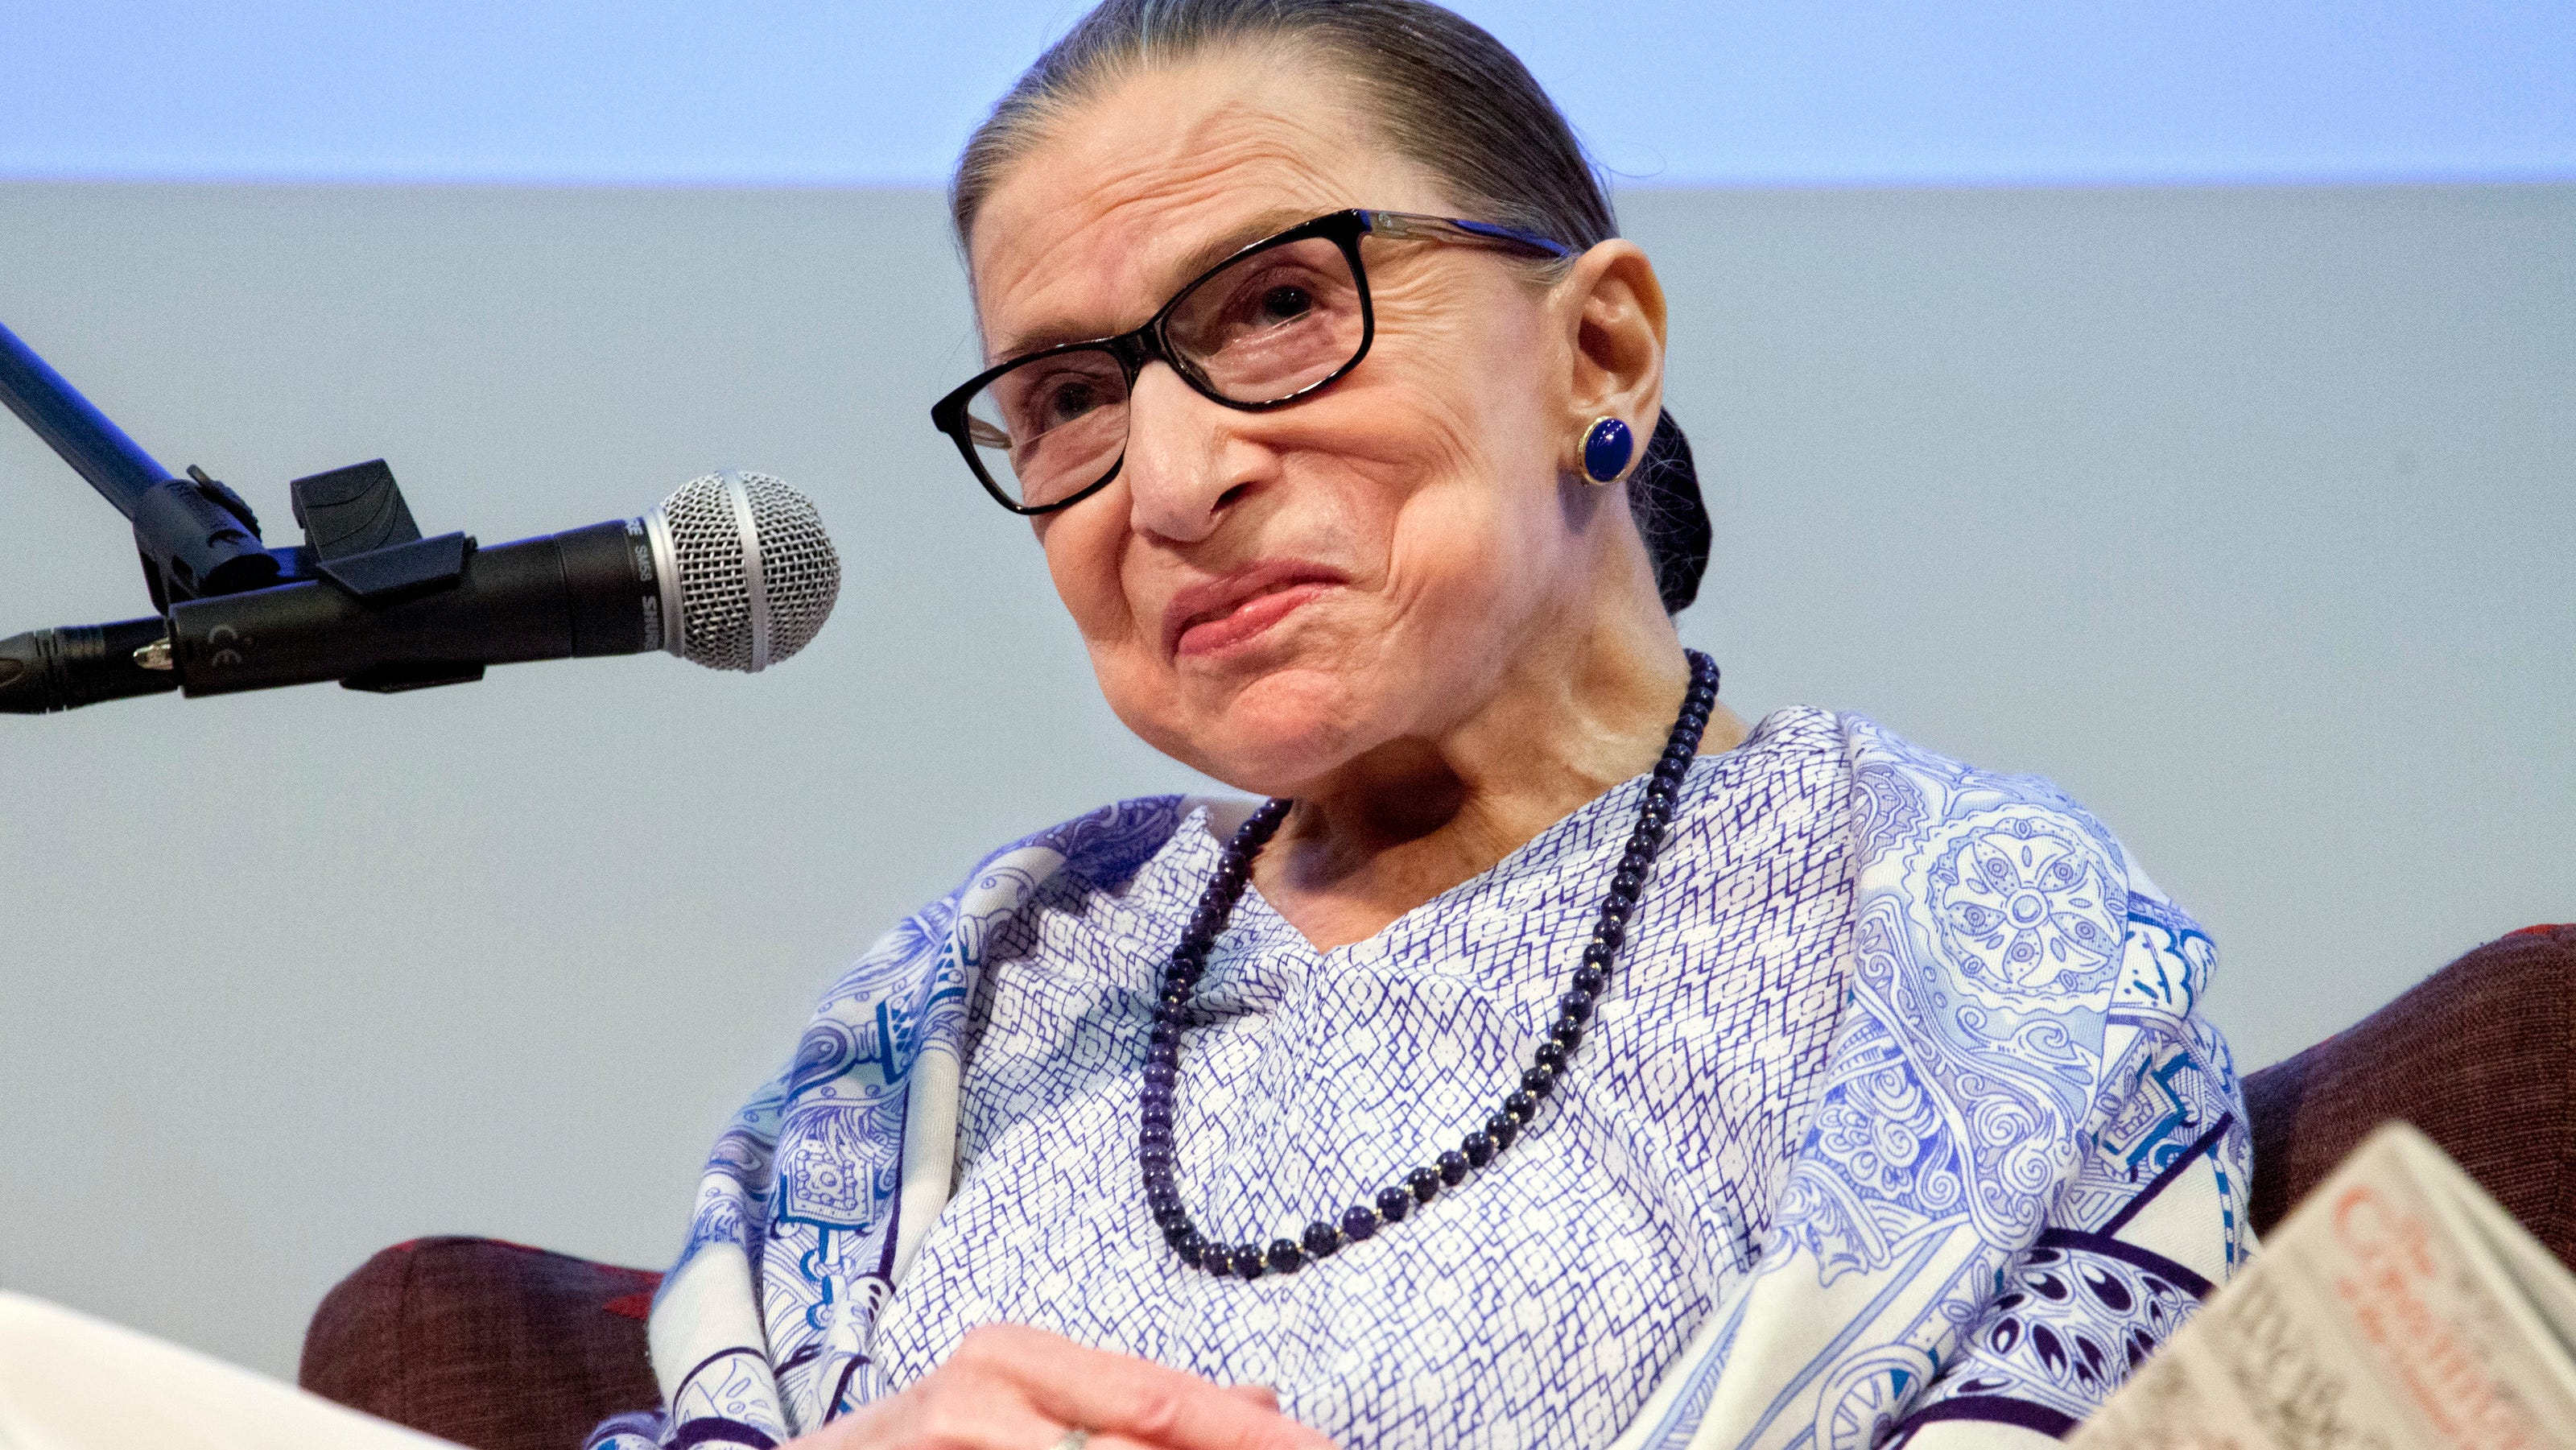 'She never failed': Reaction to the death of Supreme Court Justice Ruth Bader Ginsburg